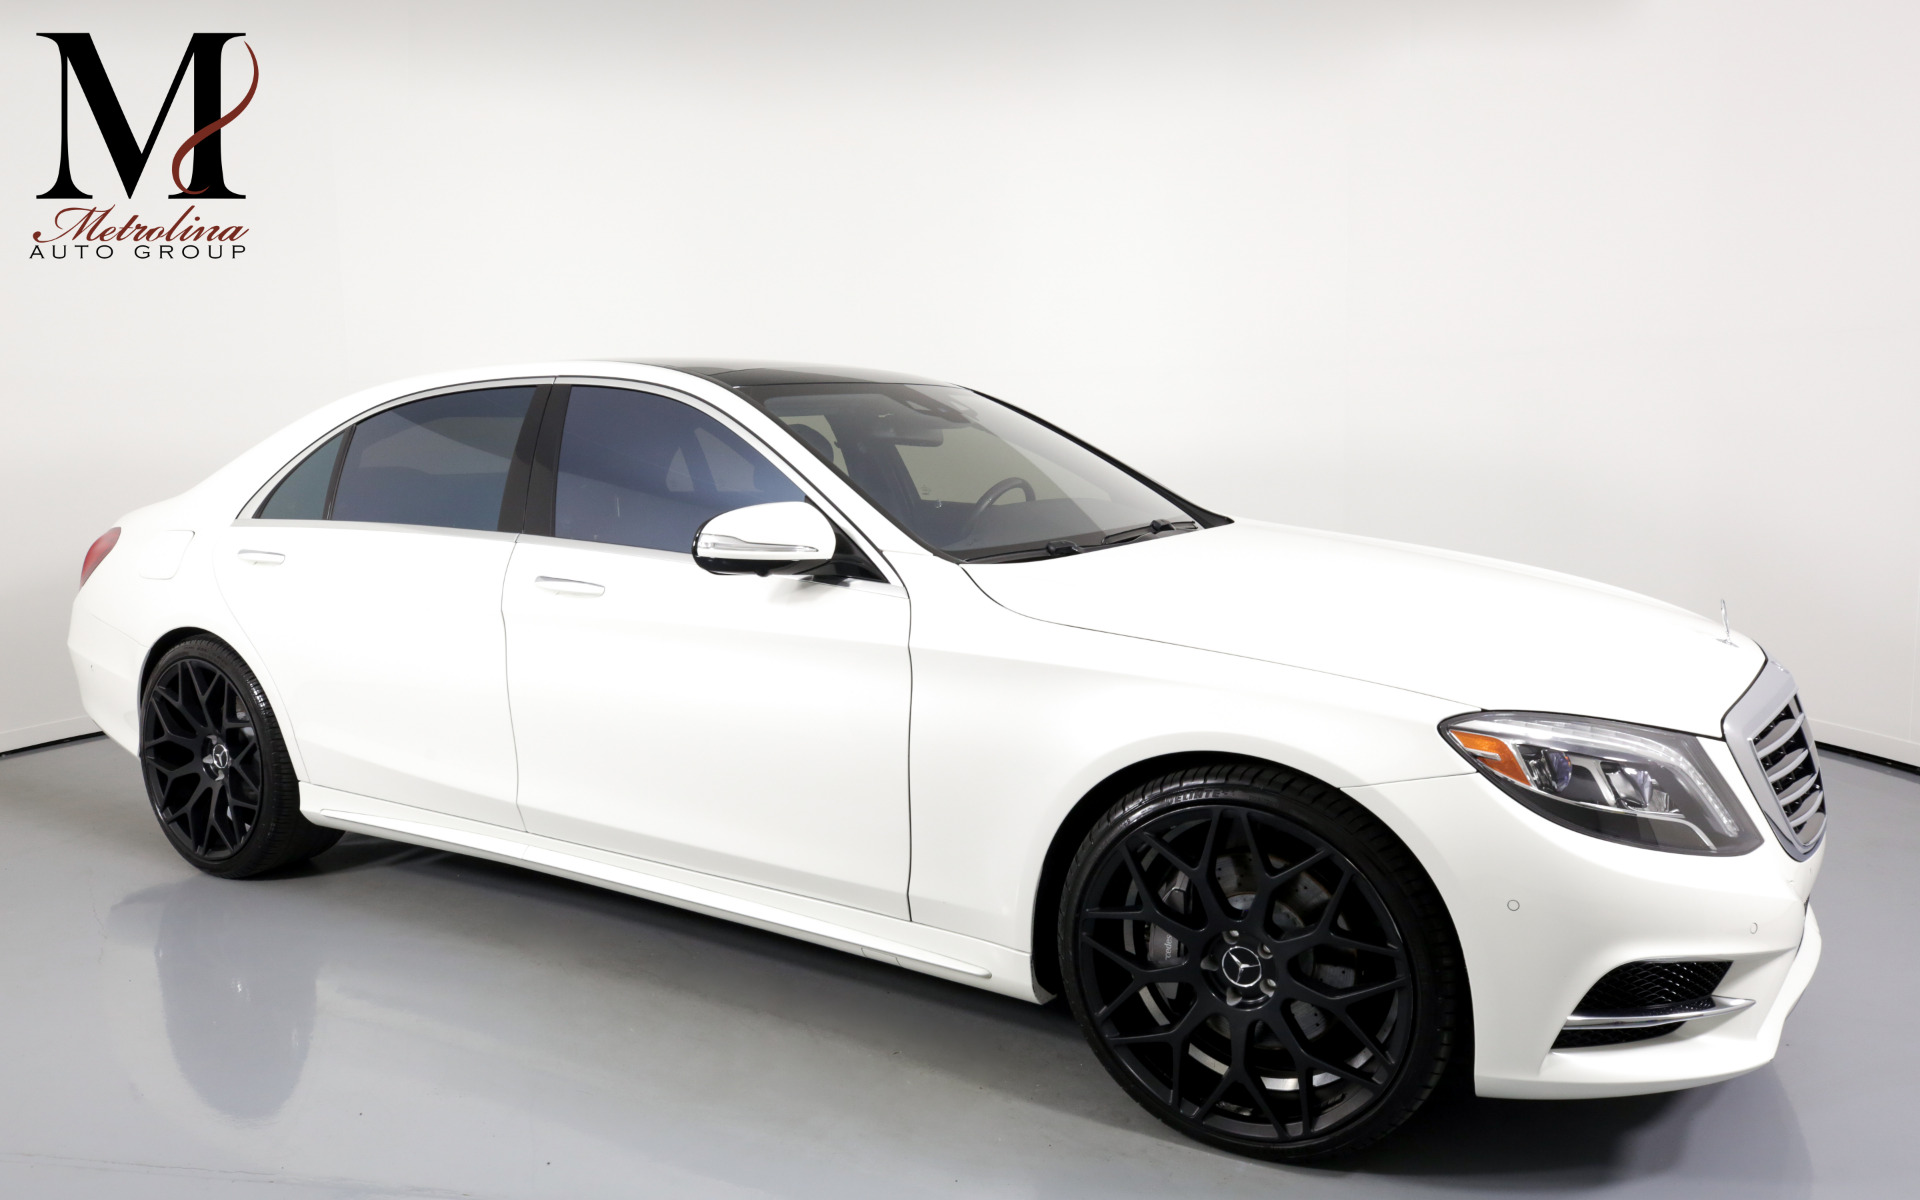 Used 2016 Mercedes-Benz S-Class S 550 for sale $45,996 at Metrolina Auto Group in Charlotte NC 28217 - 1